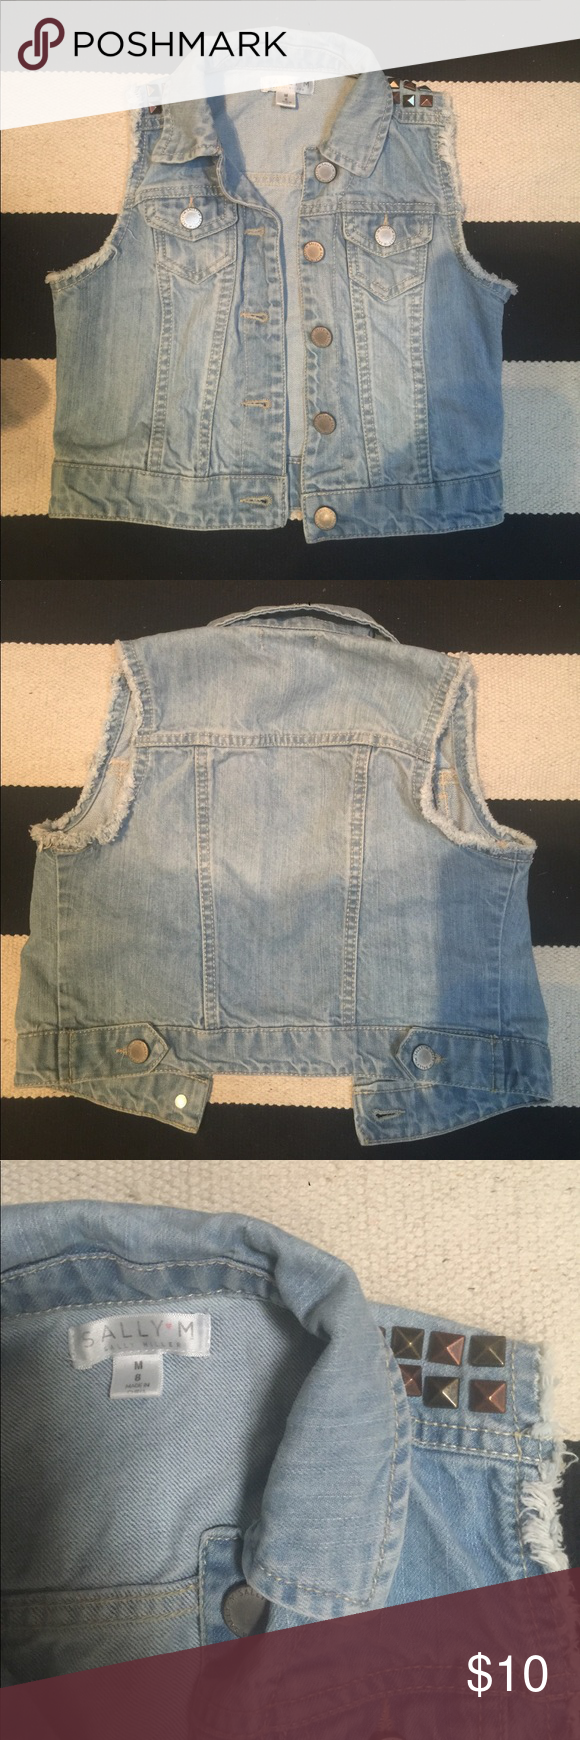 Sally Miller Sleeveless Jean Jacket Barely worn, size M/8, front pockets, stoned shoulder detail Sally Miller Jackets & Coats Jean Jackets #sallymiller Sally Miller Sleeveless Jean Jacket Barely worn, size M/8, front pockets, stoned shoulder detail Sally Miller Jackets & Coats Jean Jackets #sallymiller